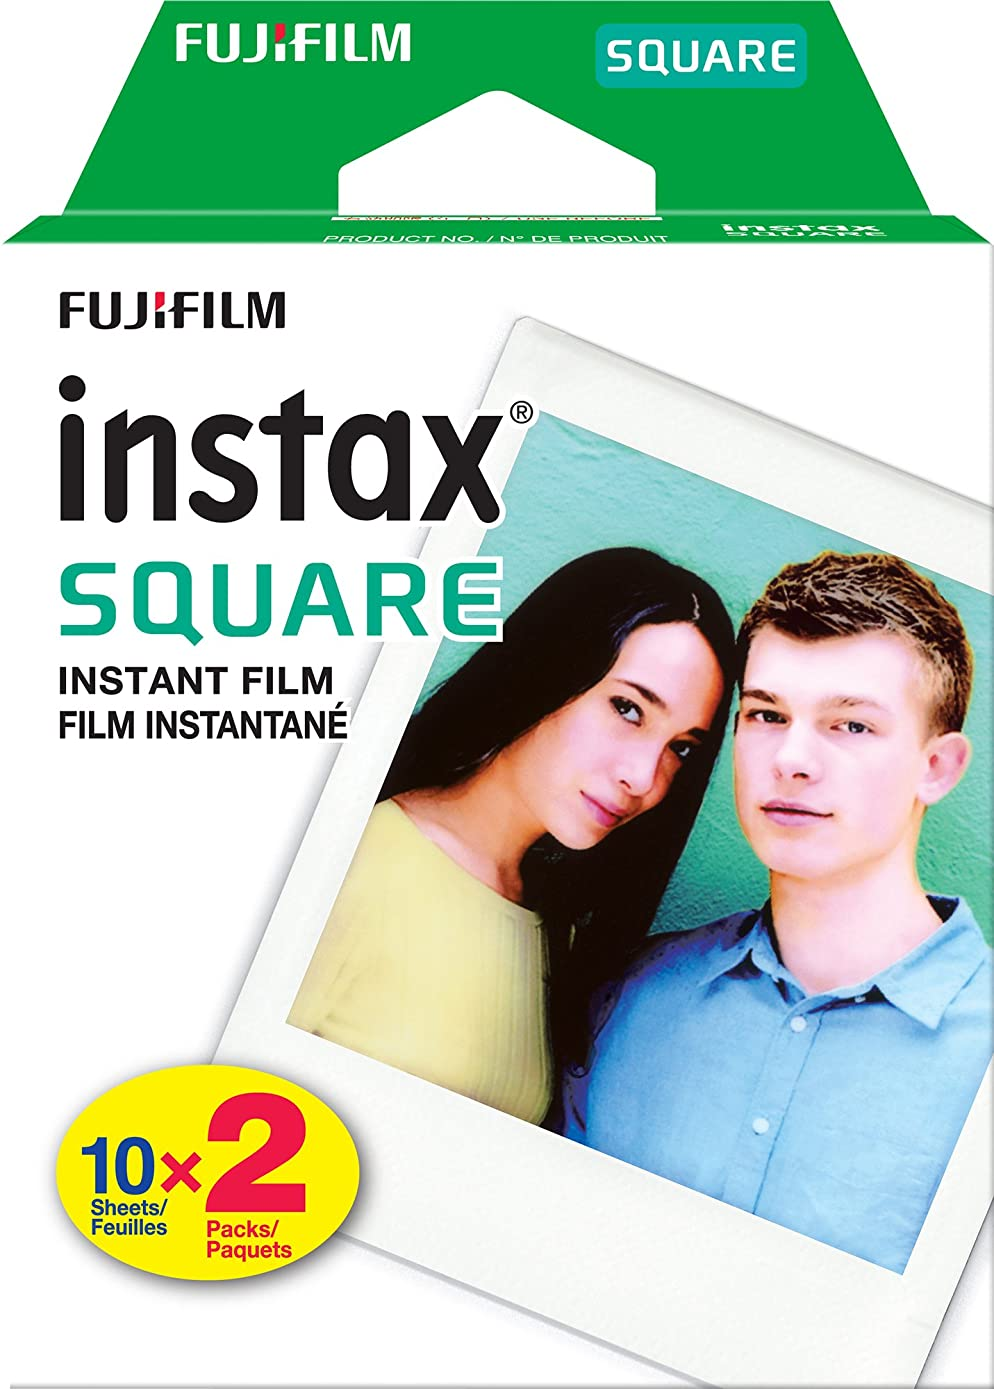 Fujifilm Square Twin Pack Film